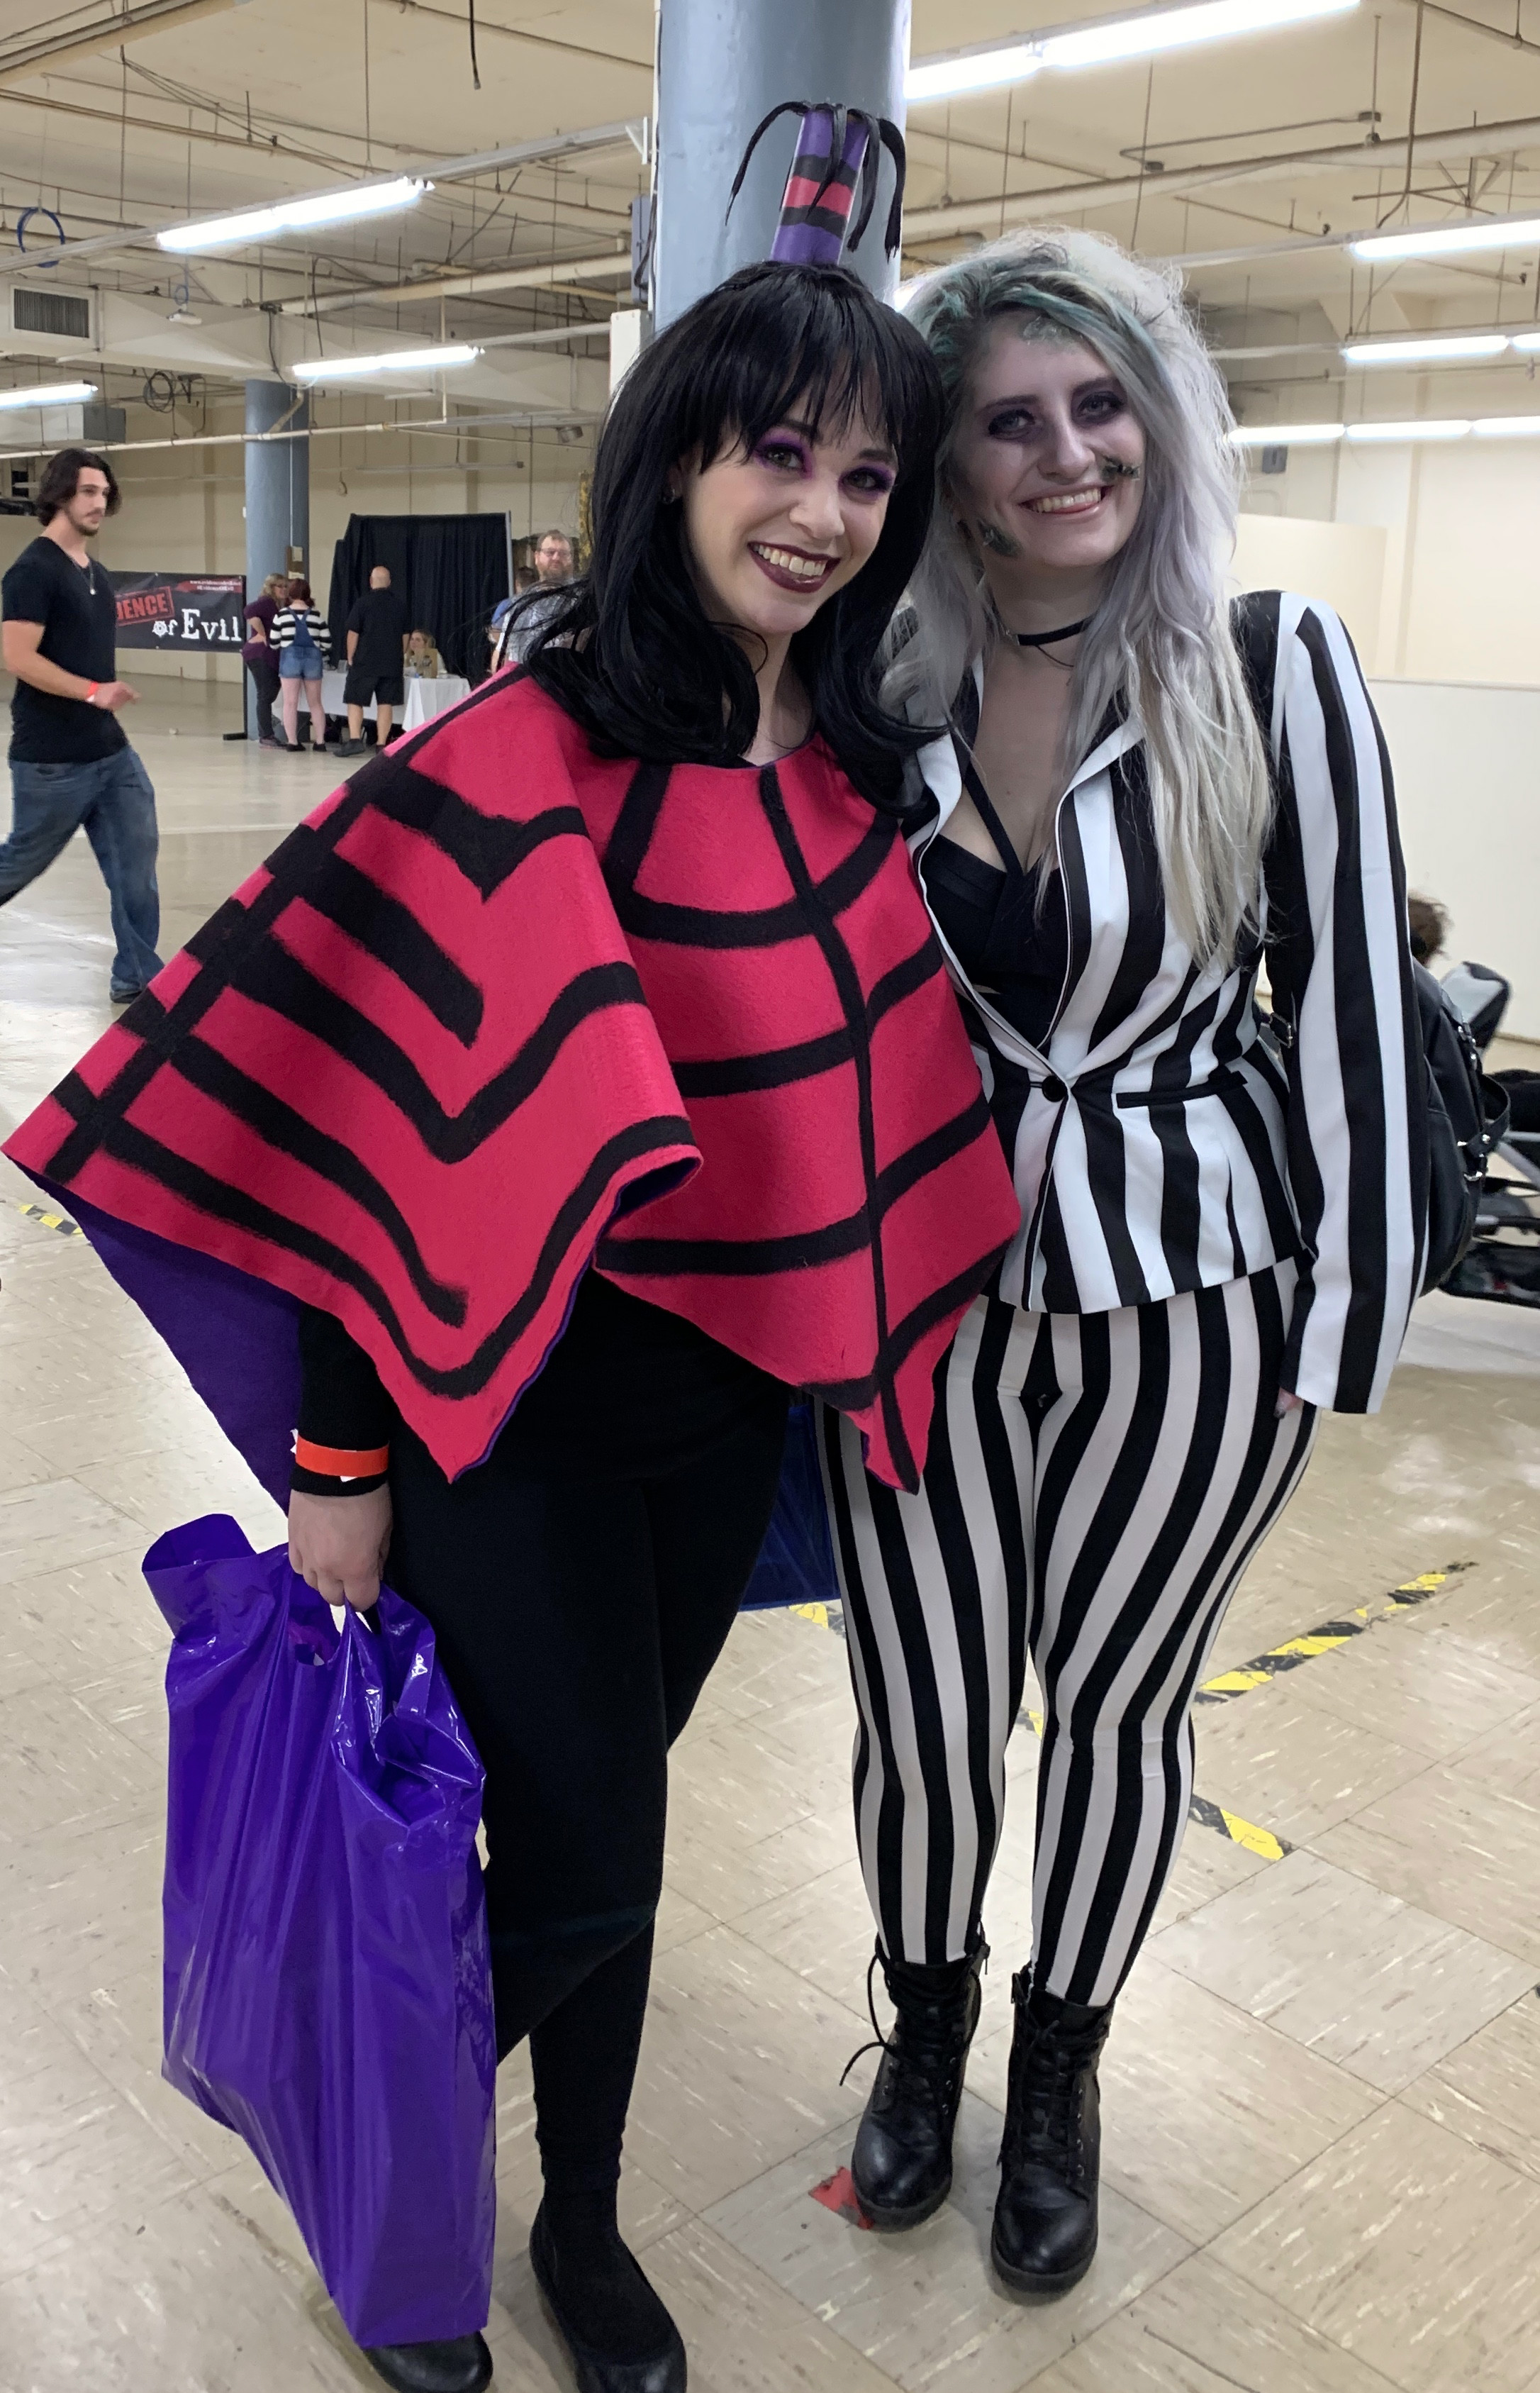 Lydia and Beetlejuice.